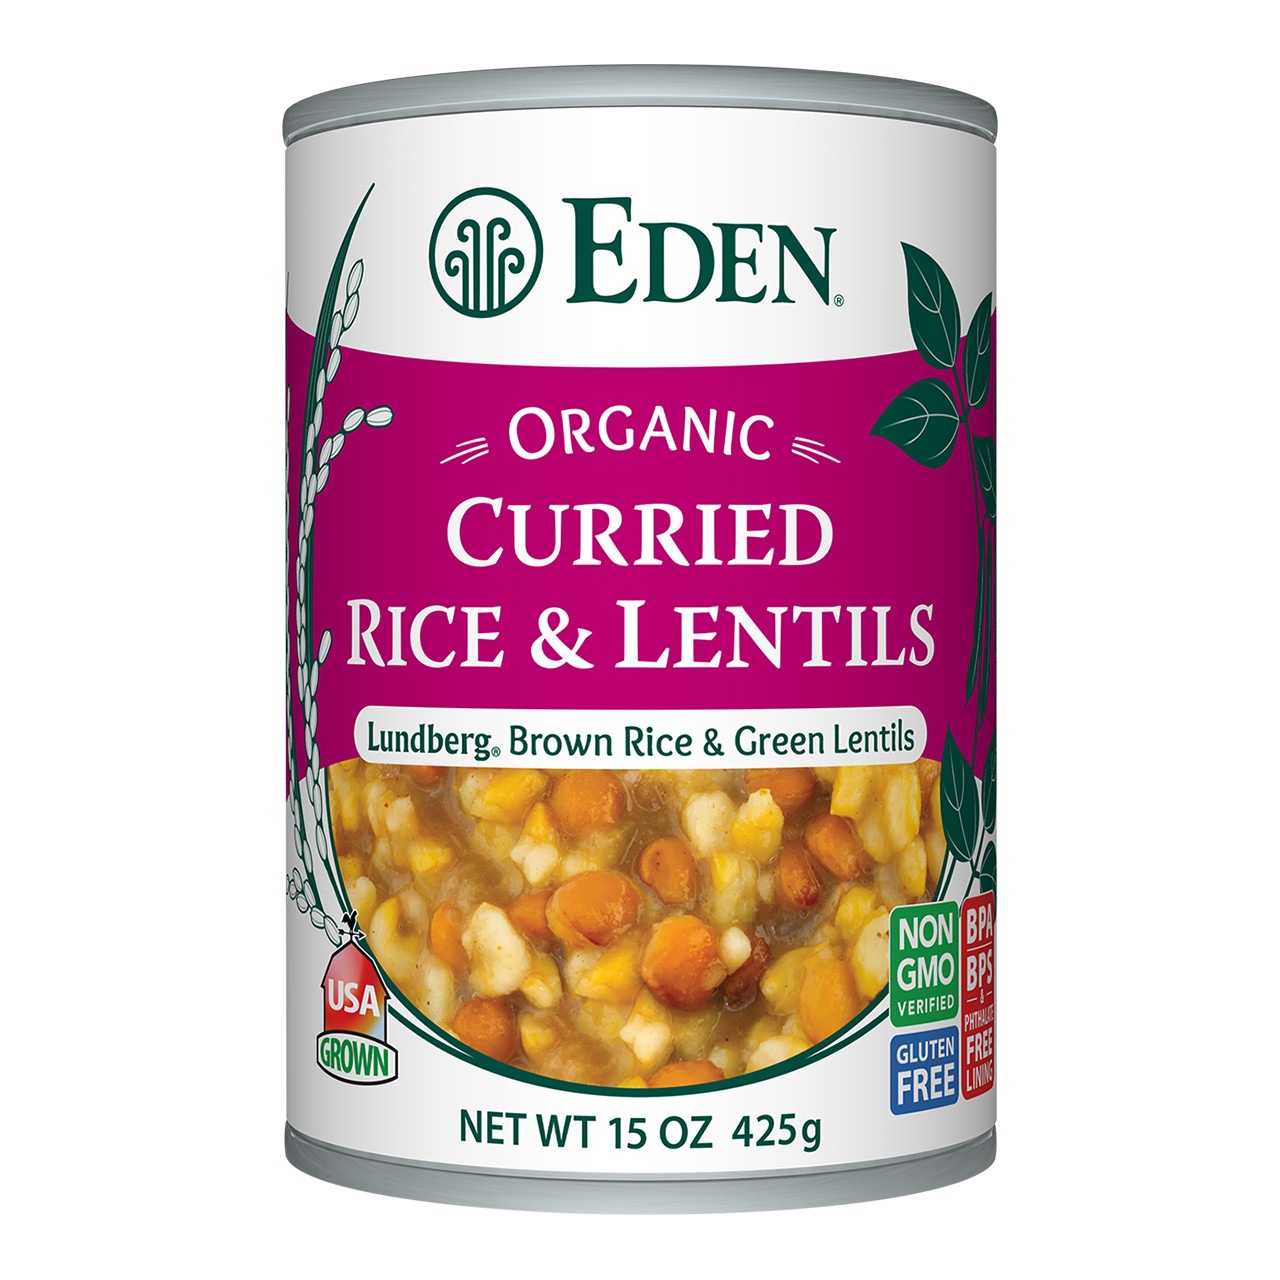 Curried Rice & Lentils, Organic